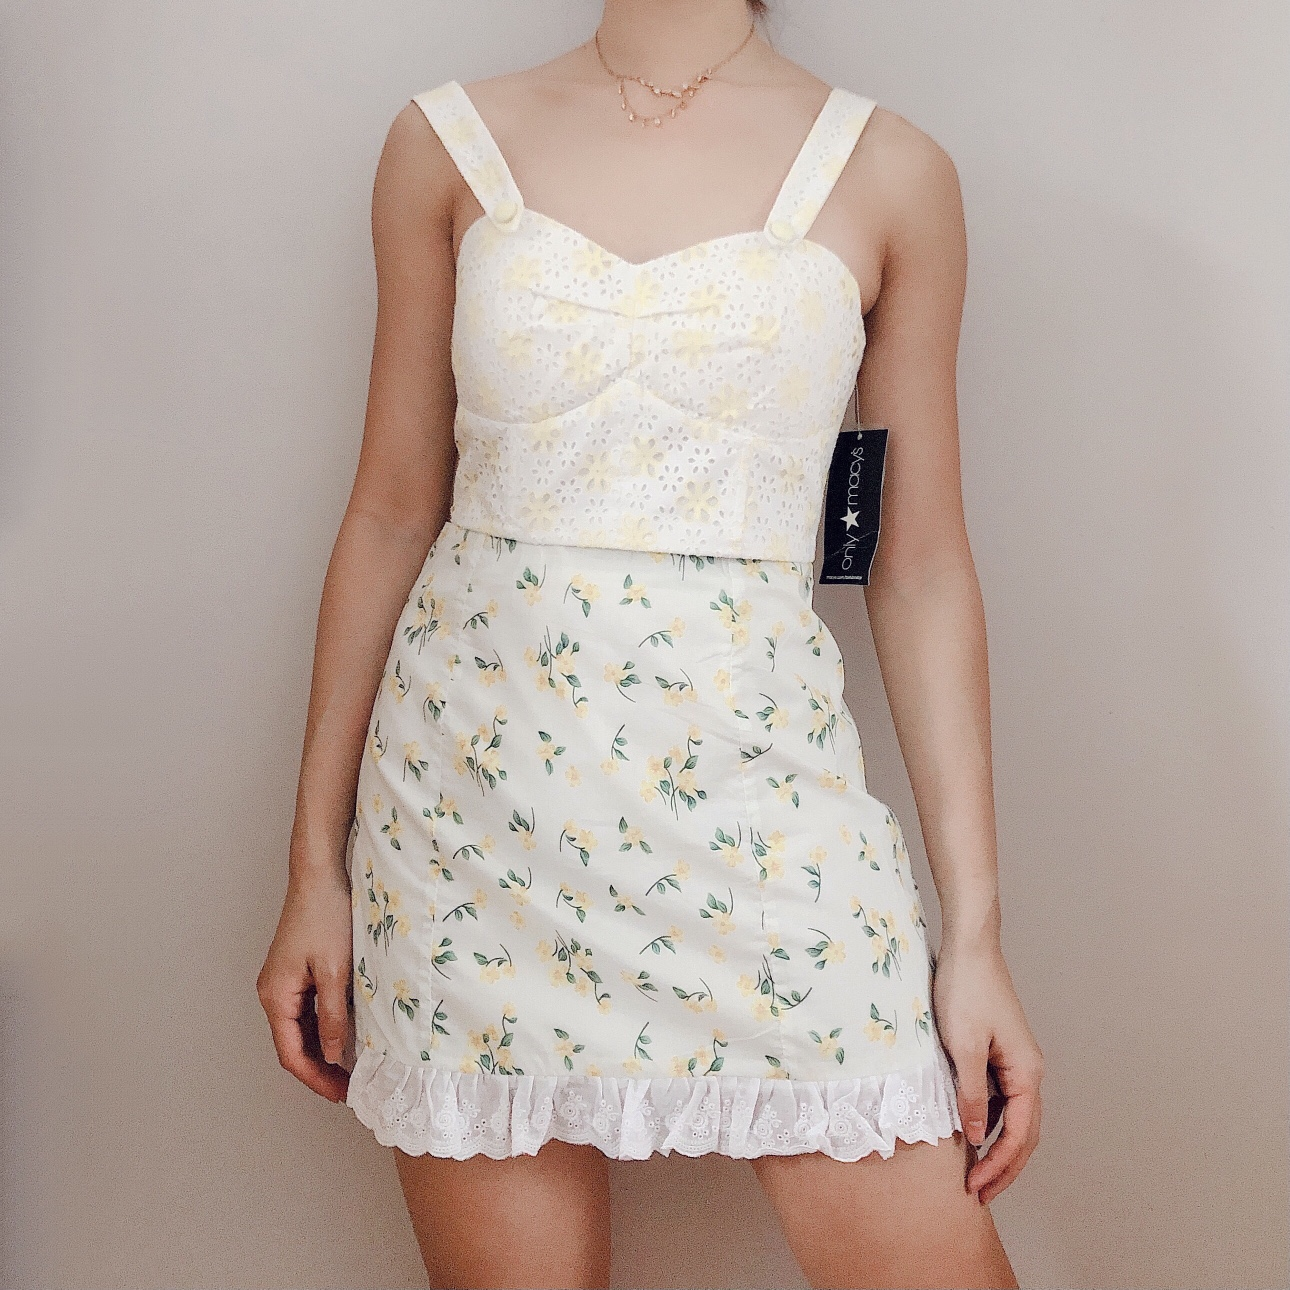 White & Yellow Daisy Floral Eyelet Bustier ♡ Padded